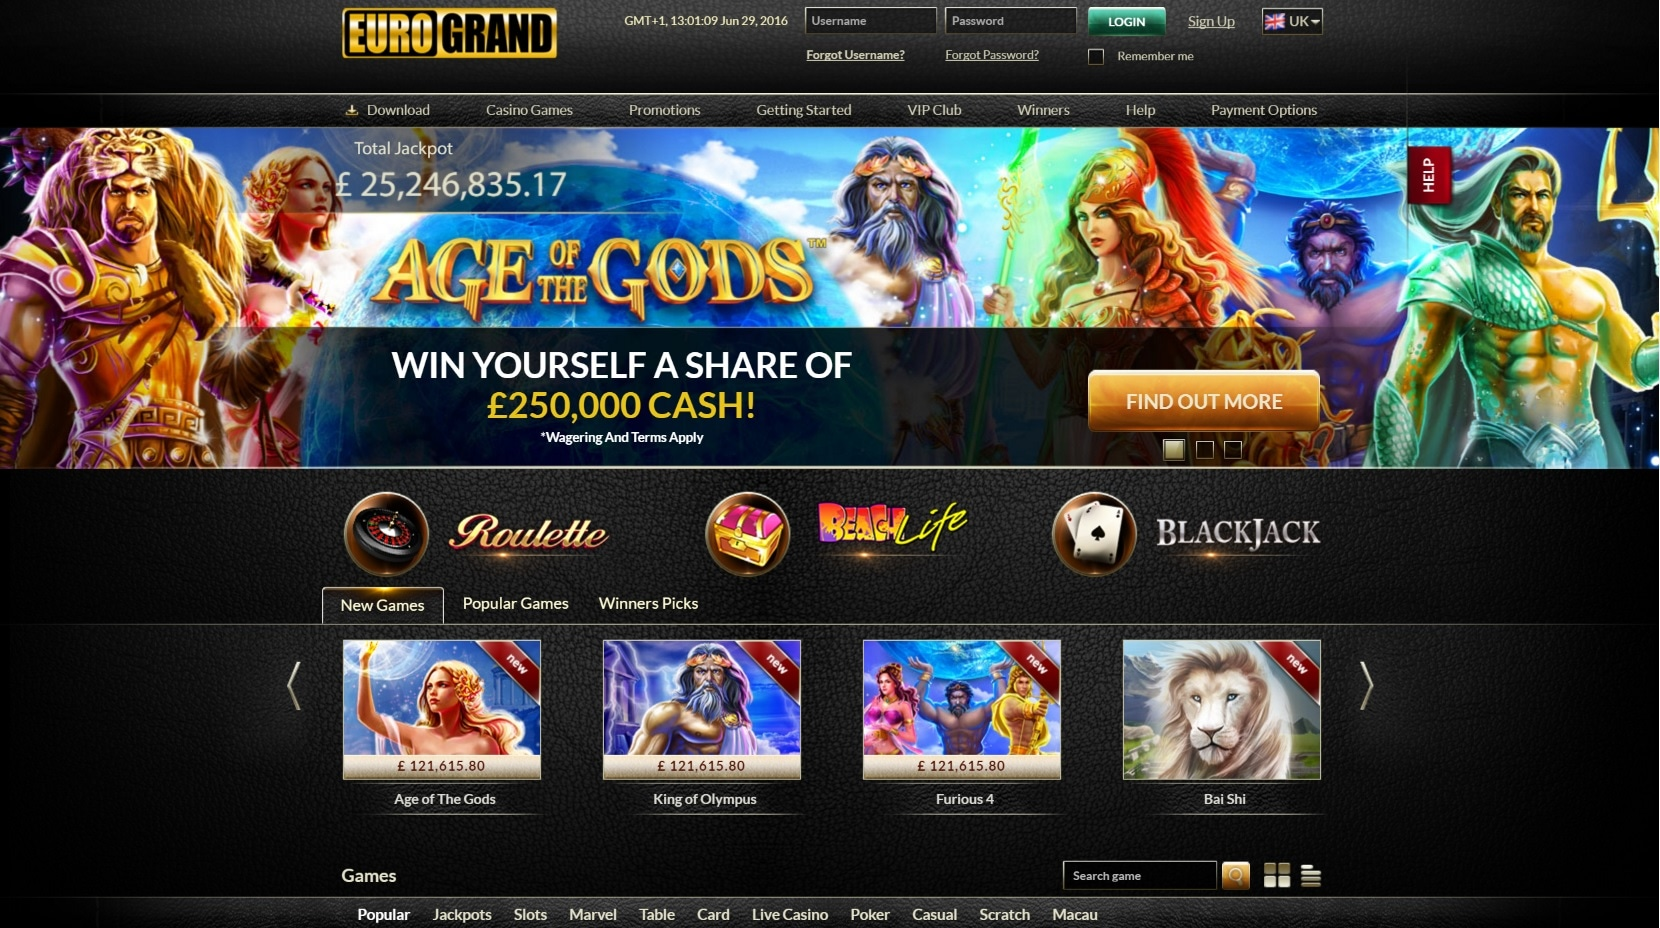 Find the Best Gambling Sites for Your Region